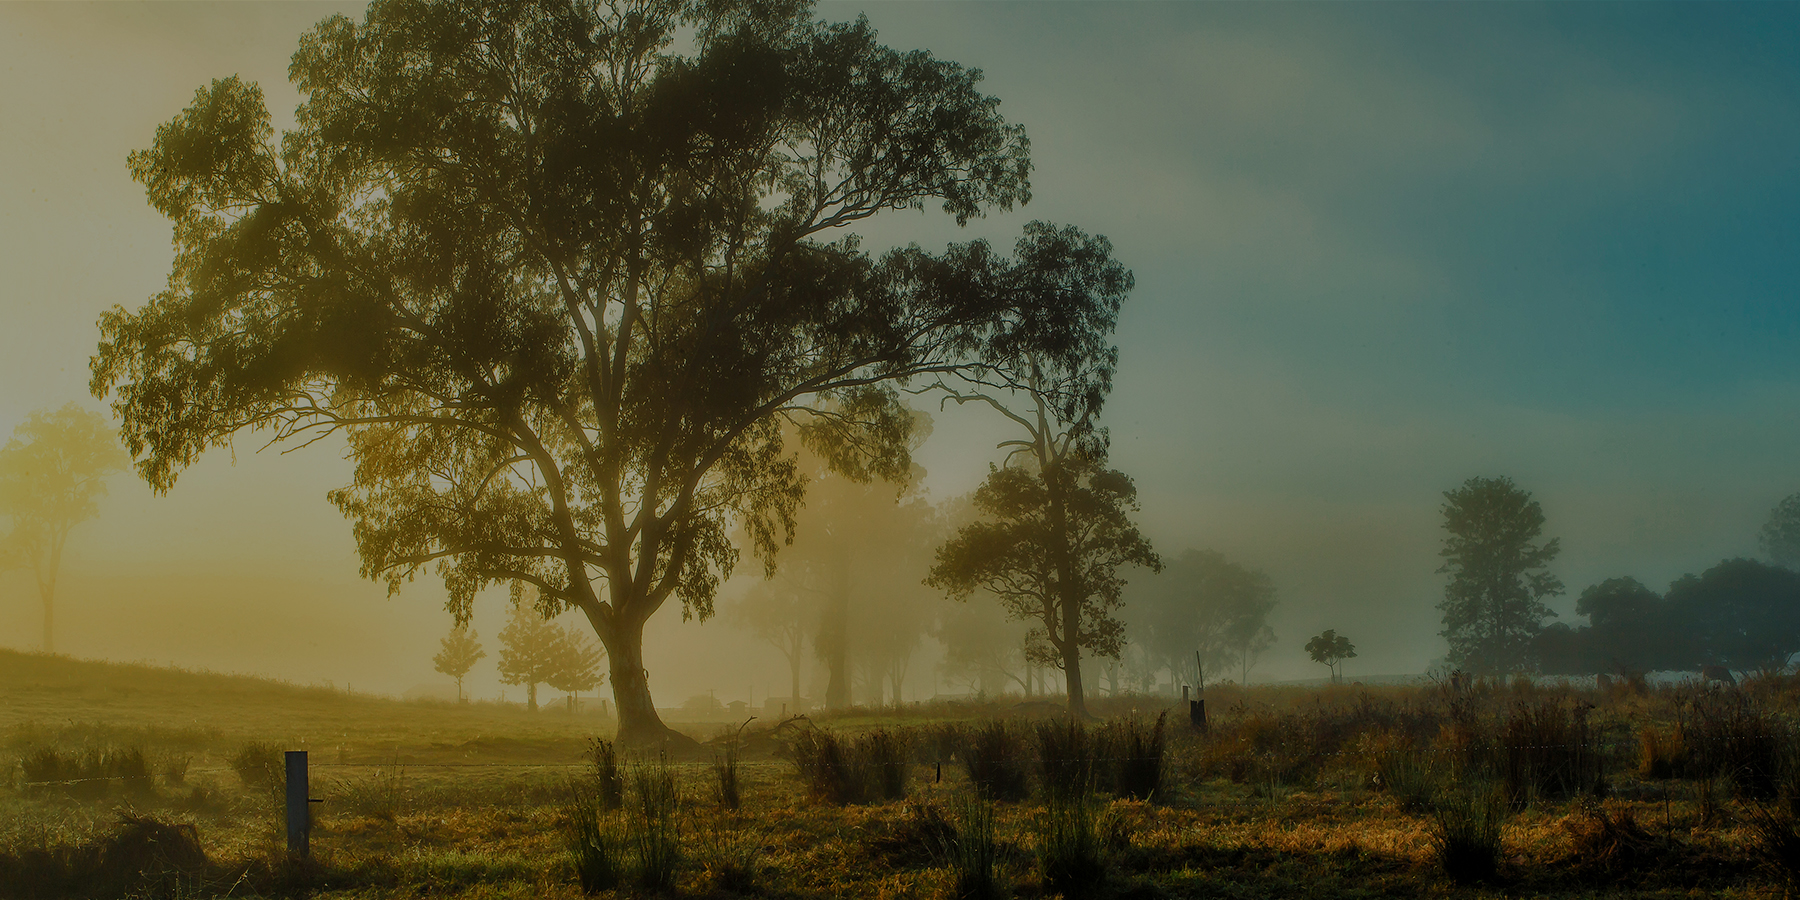 Photograph of a misty sunrise in the country